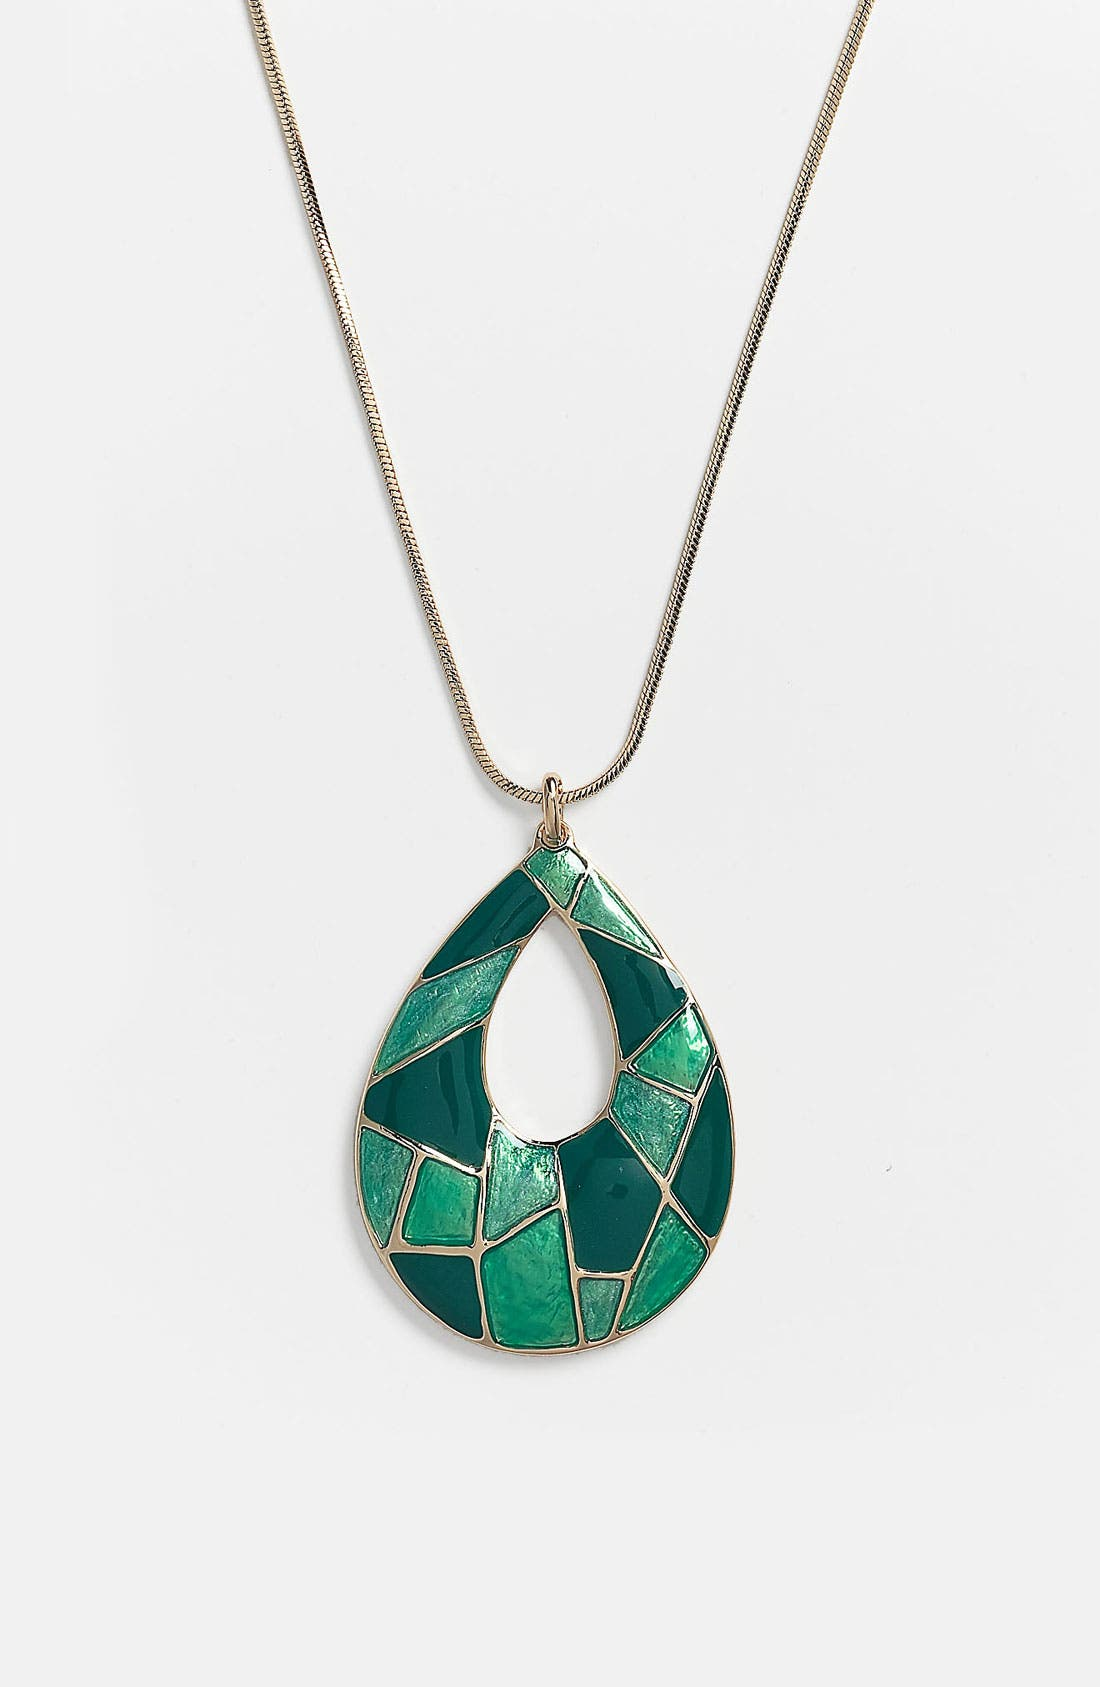 Alternate Image 1 Selected - Nordstrom 'Mosaics' Reversible Pendant Necklace